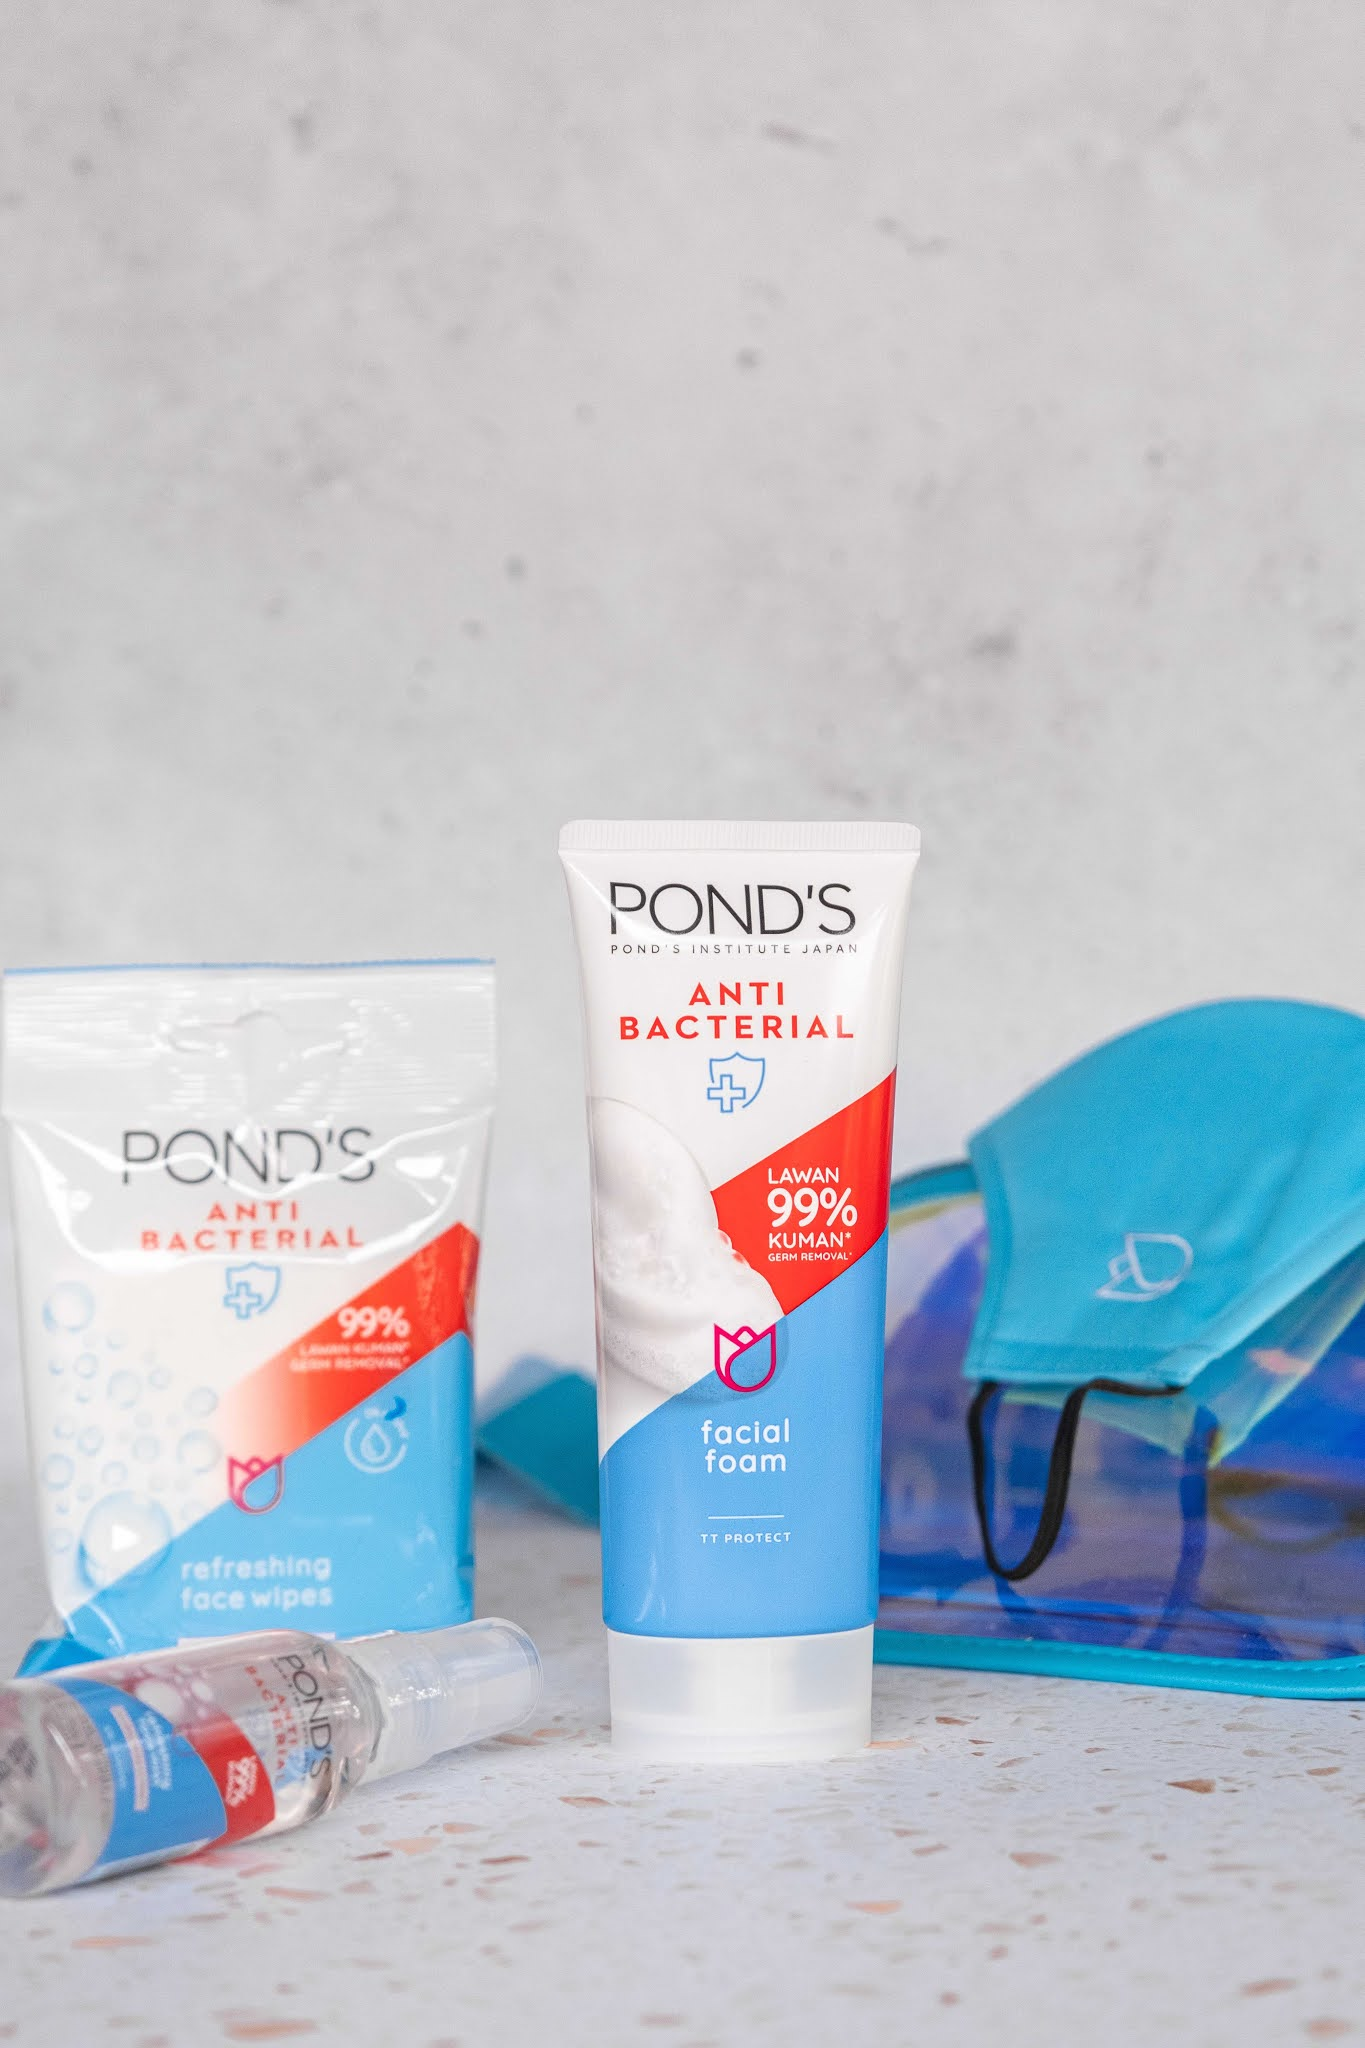 Pond's Anti-Bacterial Range